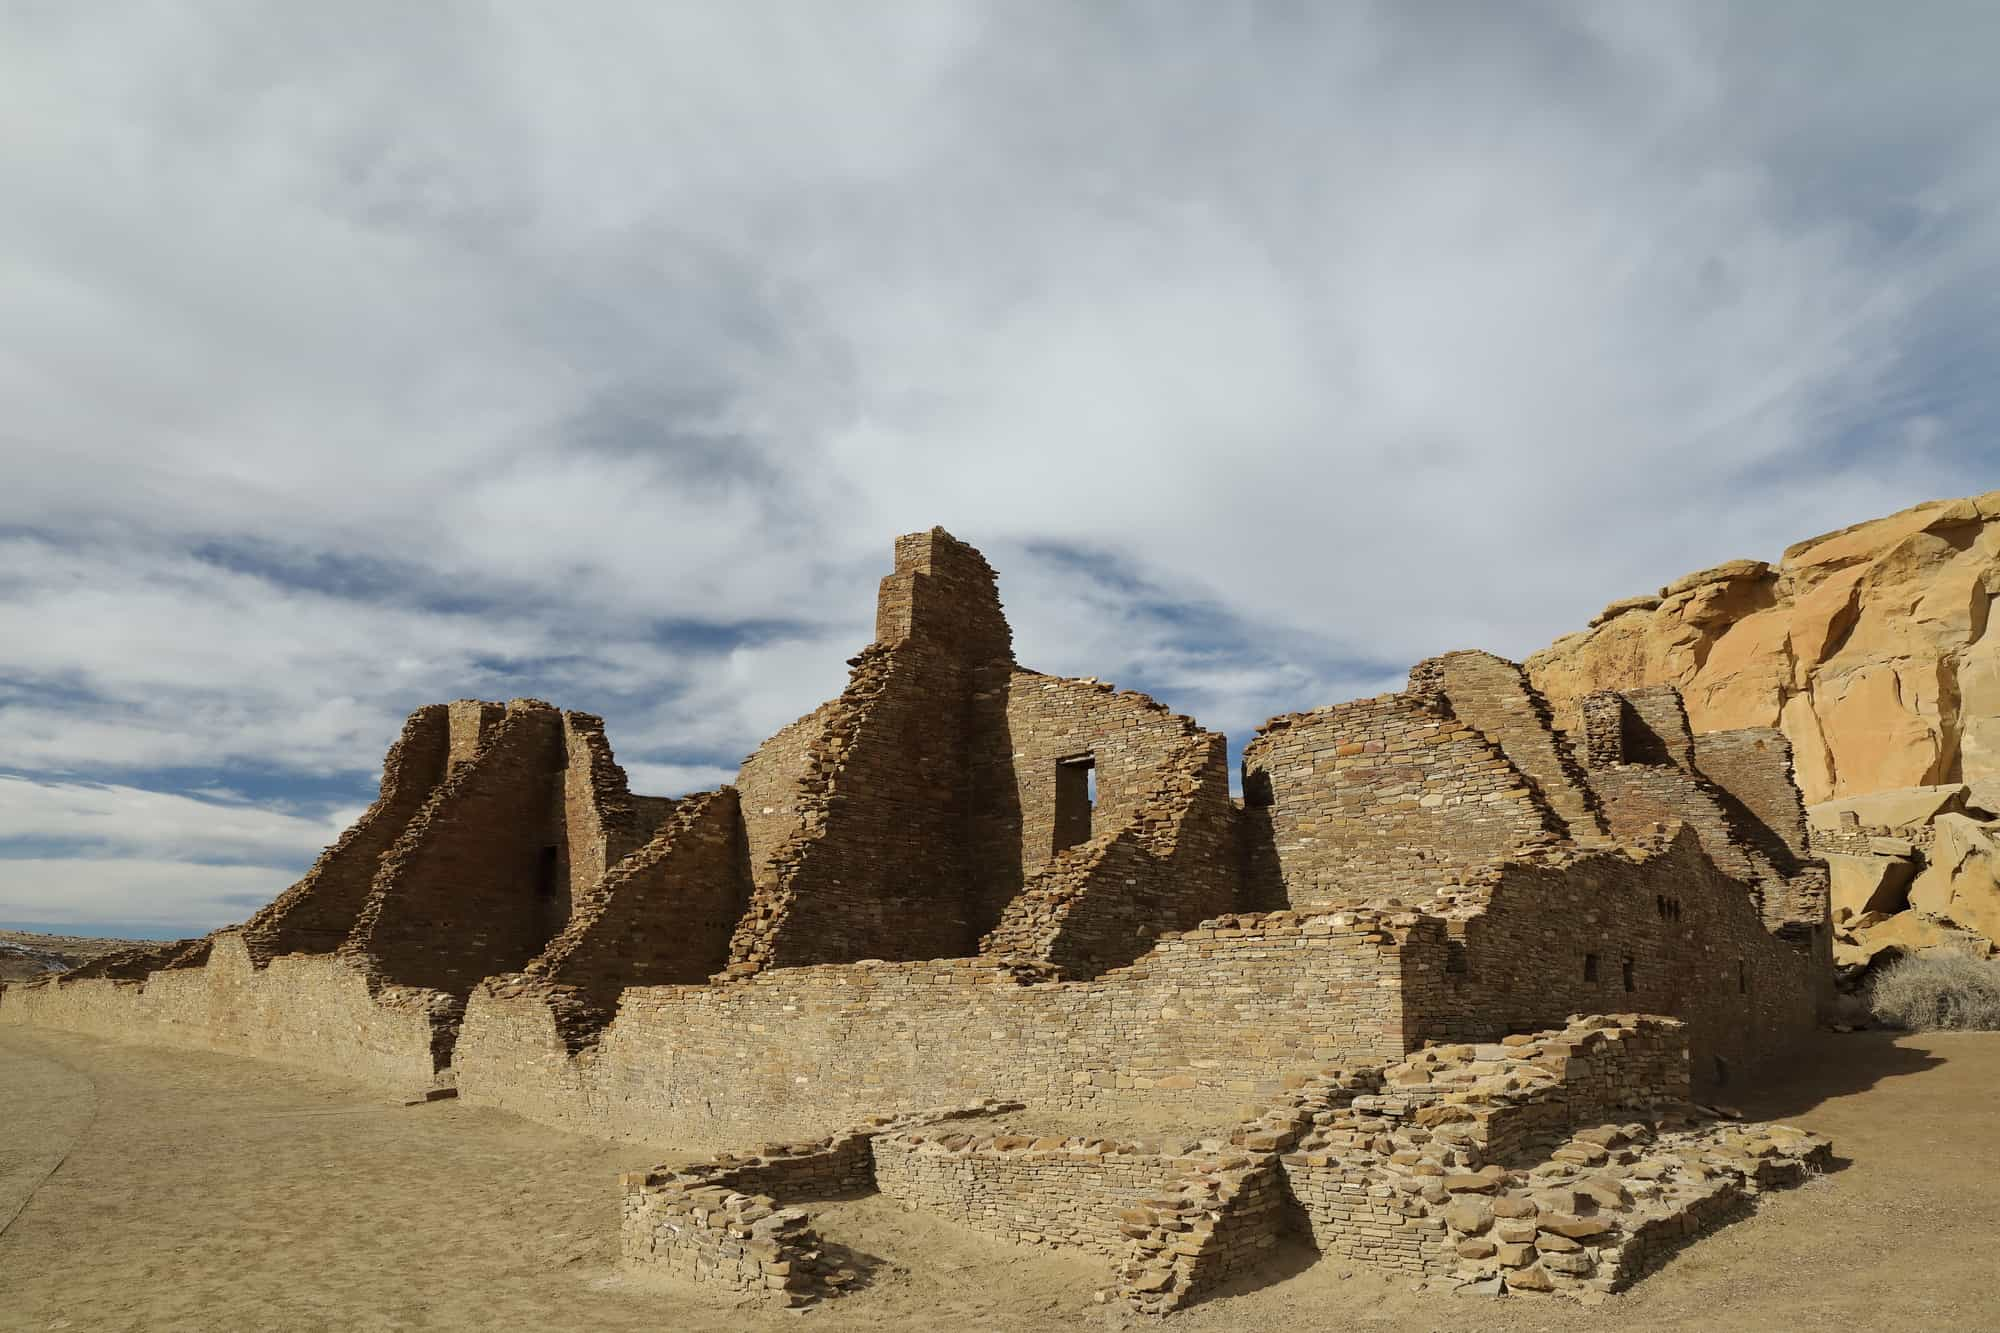 Chaco Culture National Historic